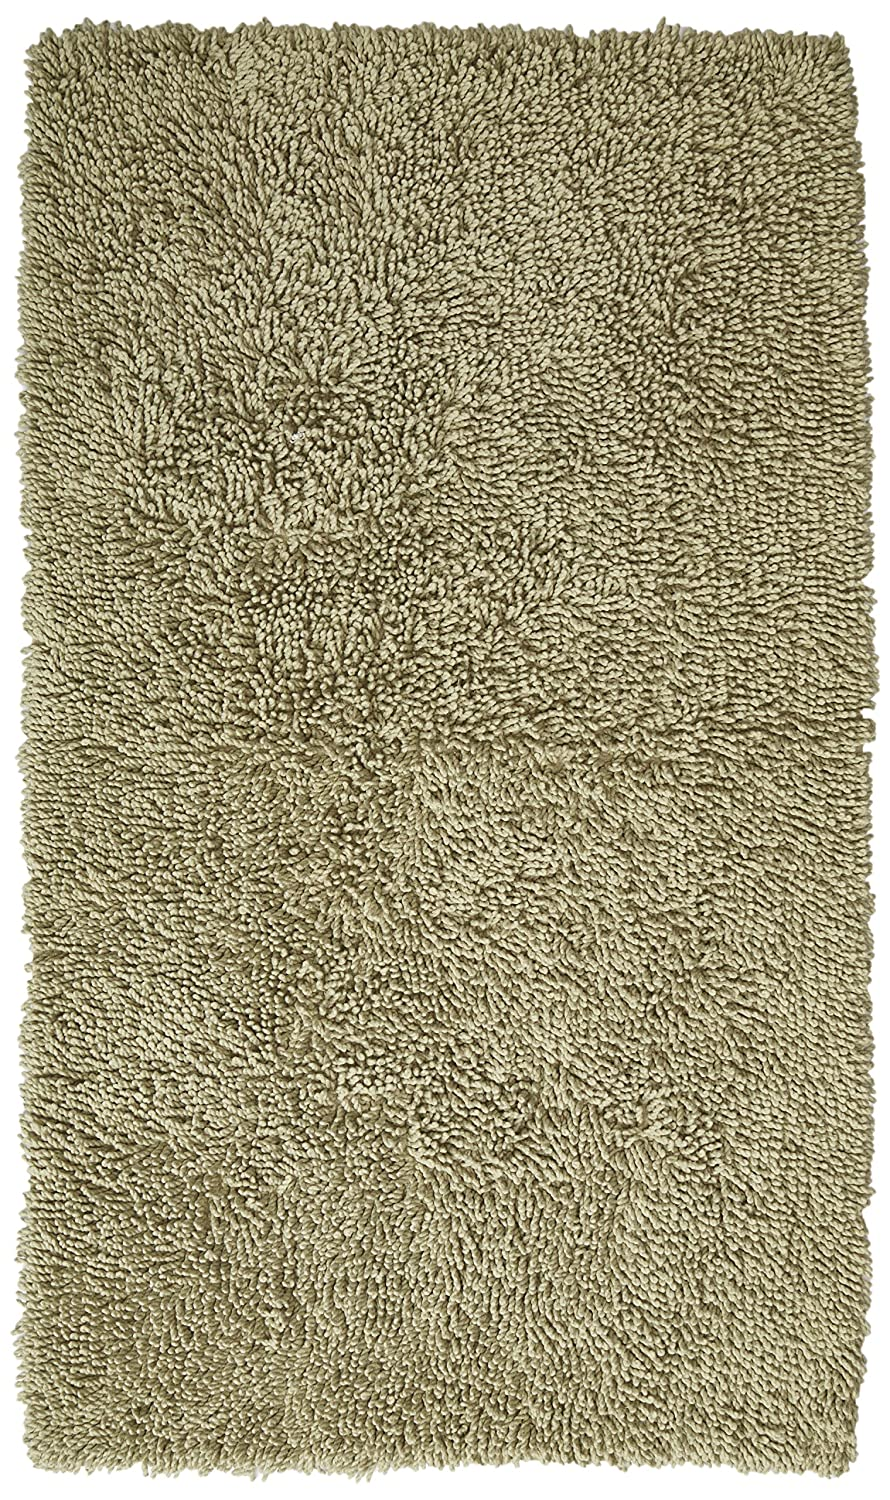 Pinzon 100% Cotton Looped Bath Rug with Non-Slip Backing - 21 x 34 inch, Ivory PINLUX-LOOP-21X34RUG-IVY